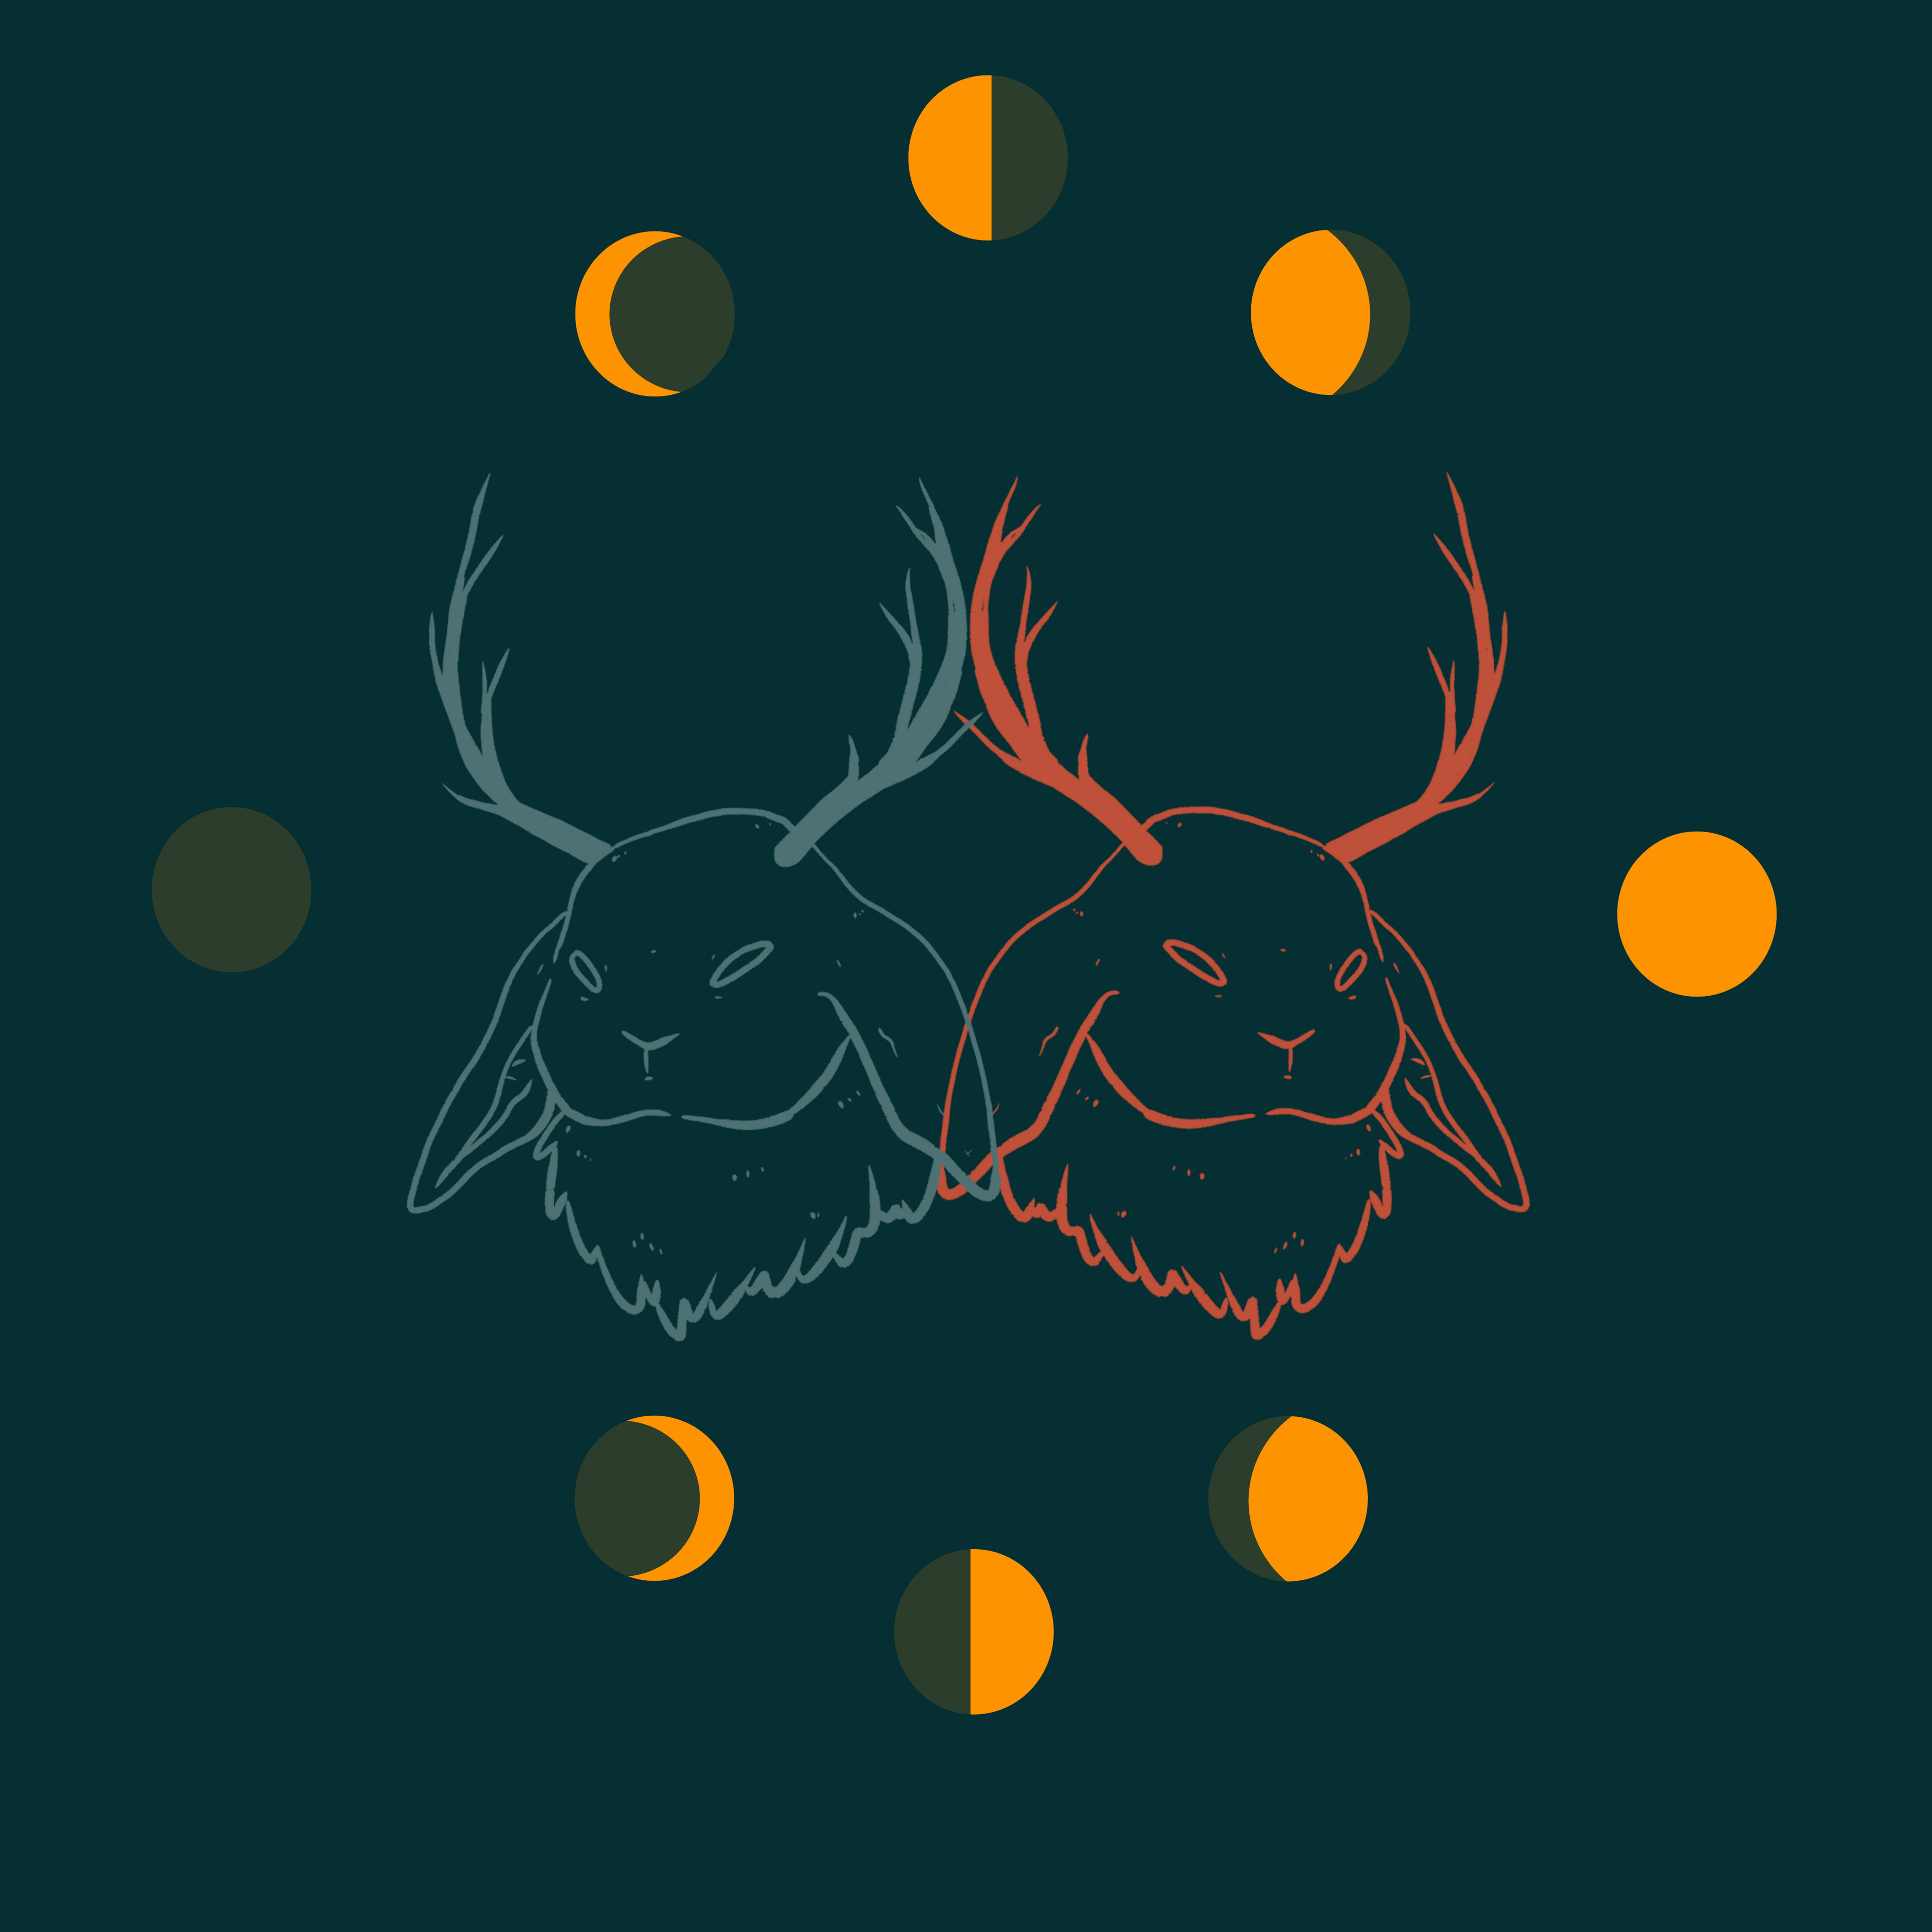 Here's another piece from my fmp! It's a design i did for a square print of a jackalope, plus some more moon phases for funzies and to connect the more 'witchy' side of my project to the cryptids.